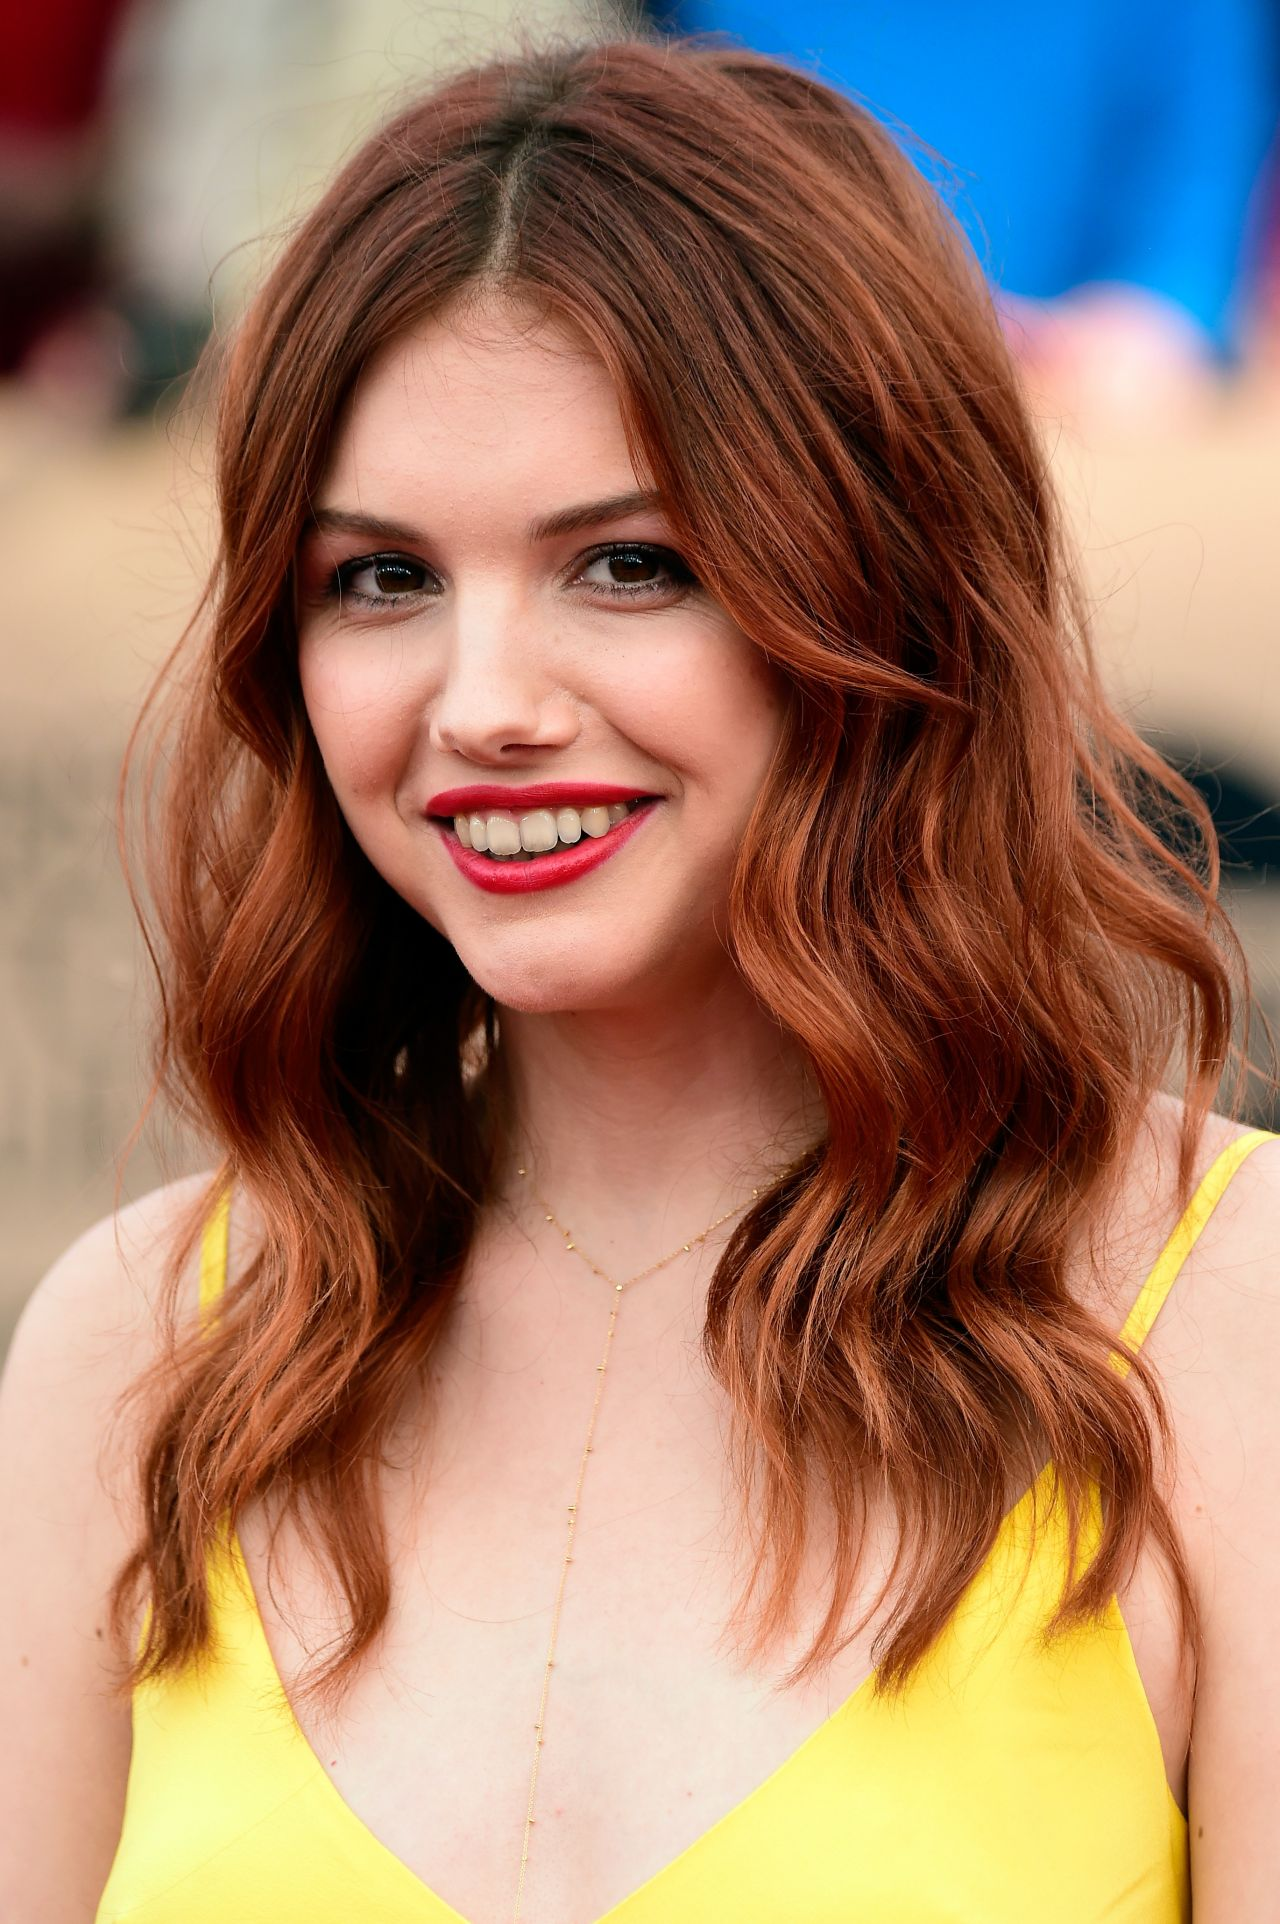 Hannah Murray 2018: Hair, Eyes, Feet, Legs, Style, Weight ...